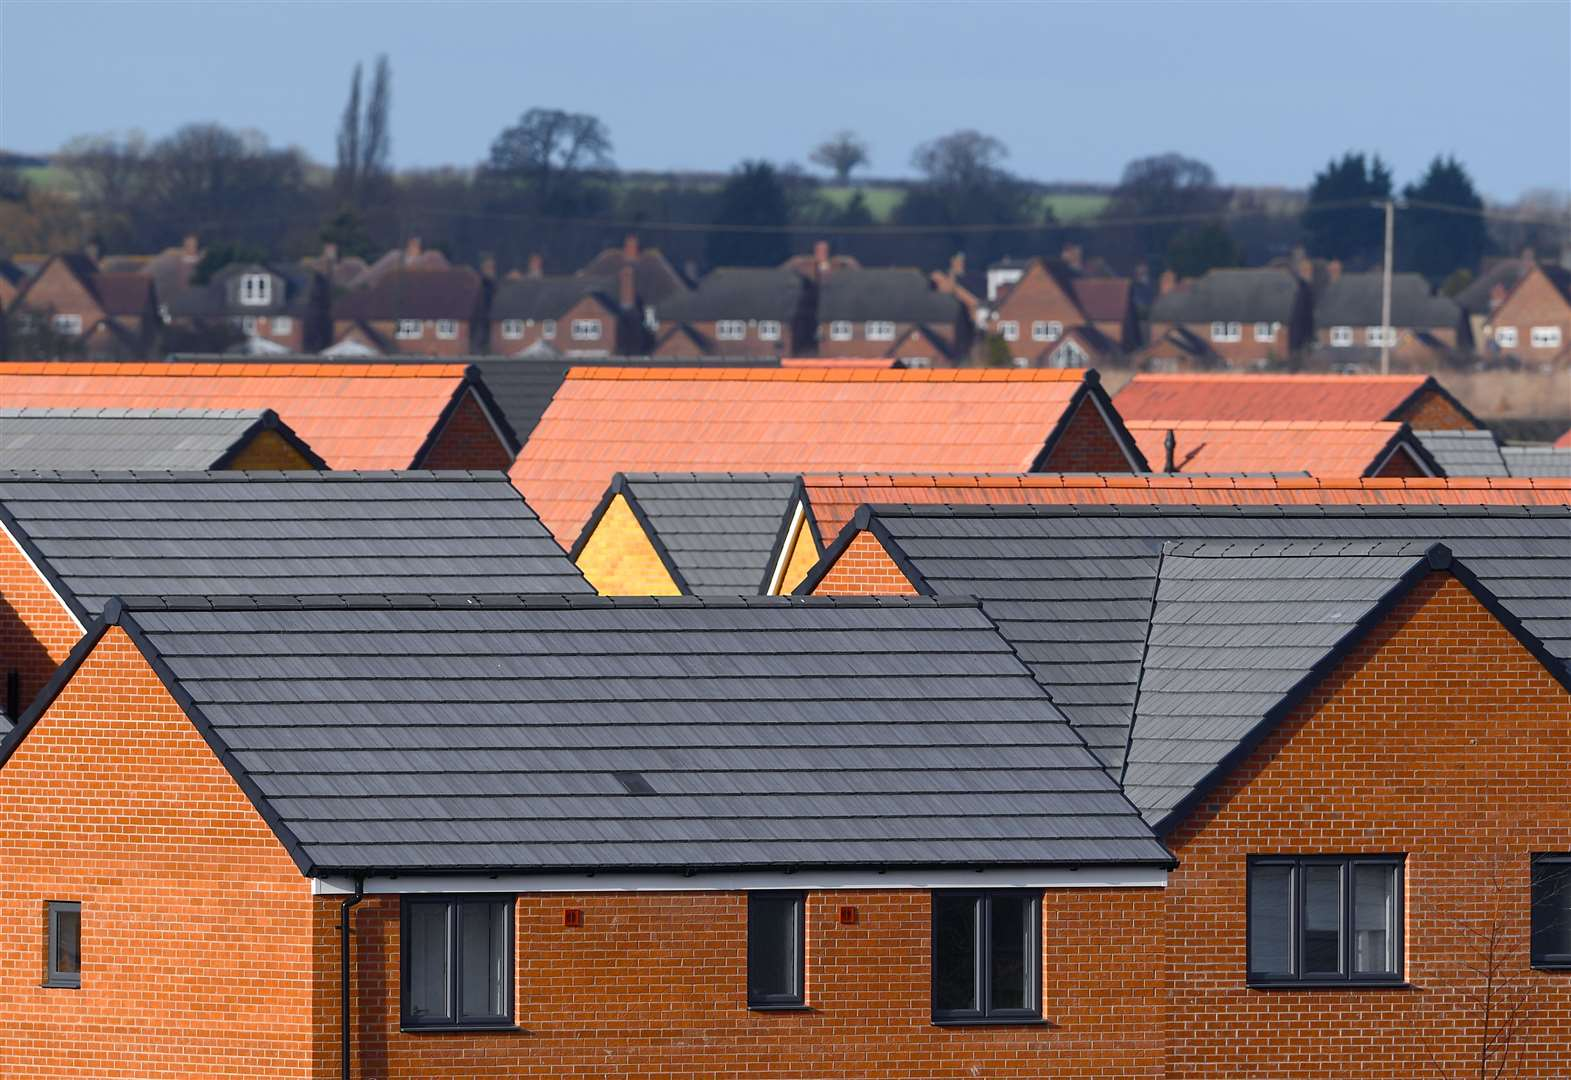 Council accused of 'culture of secrecy' over housing